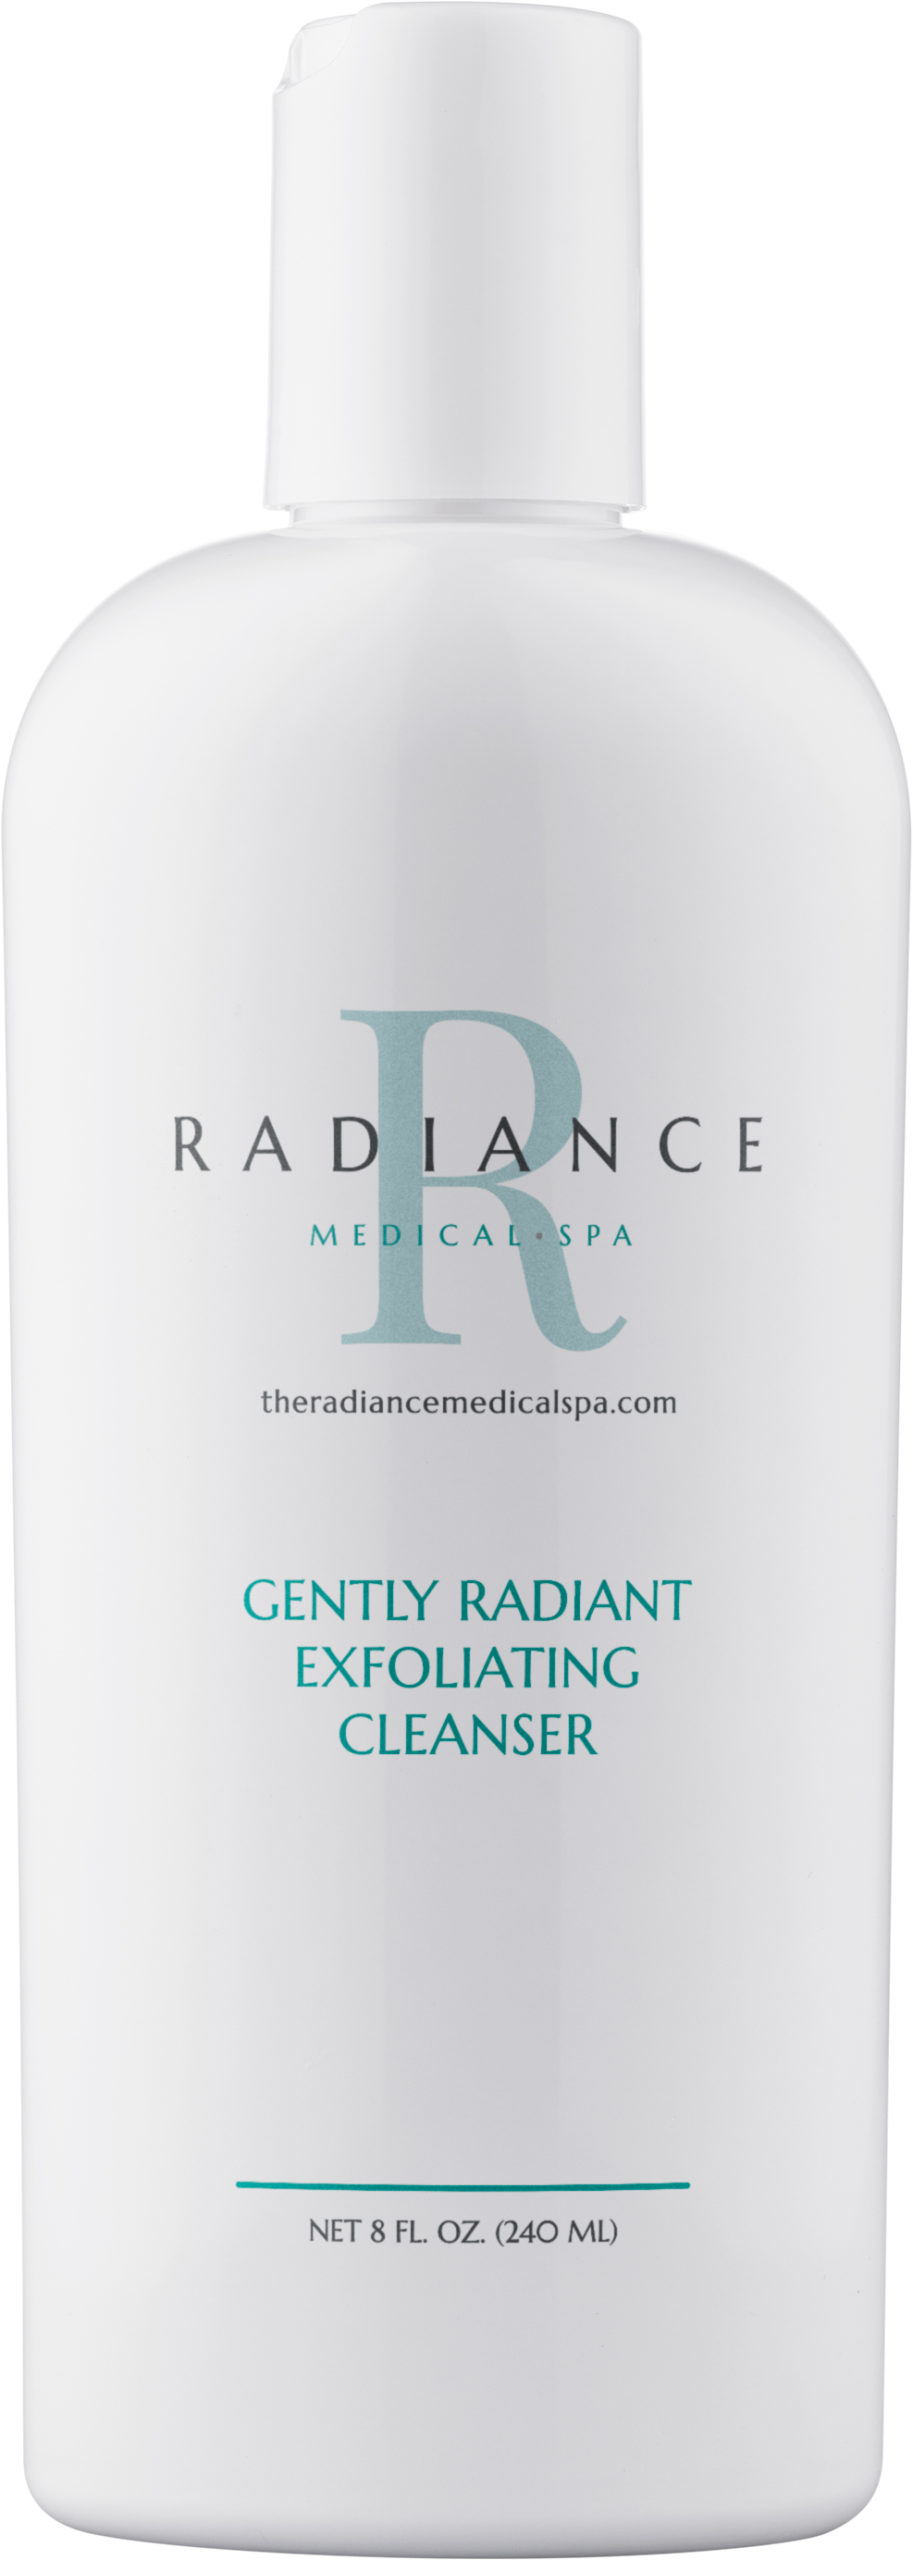 Gently Radiant Exfoliating Cleanser